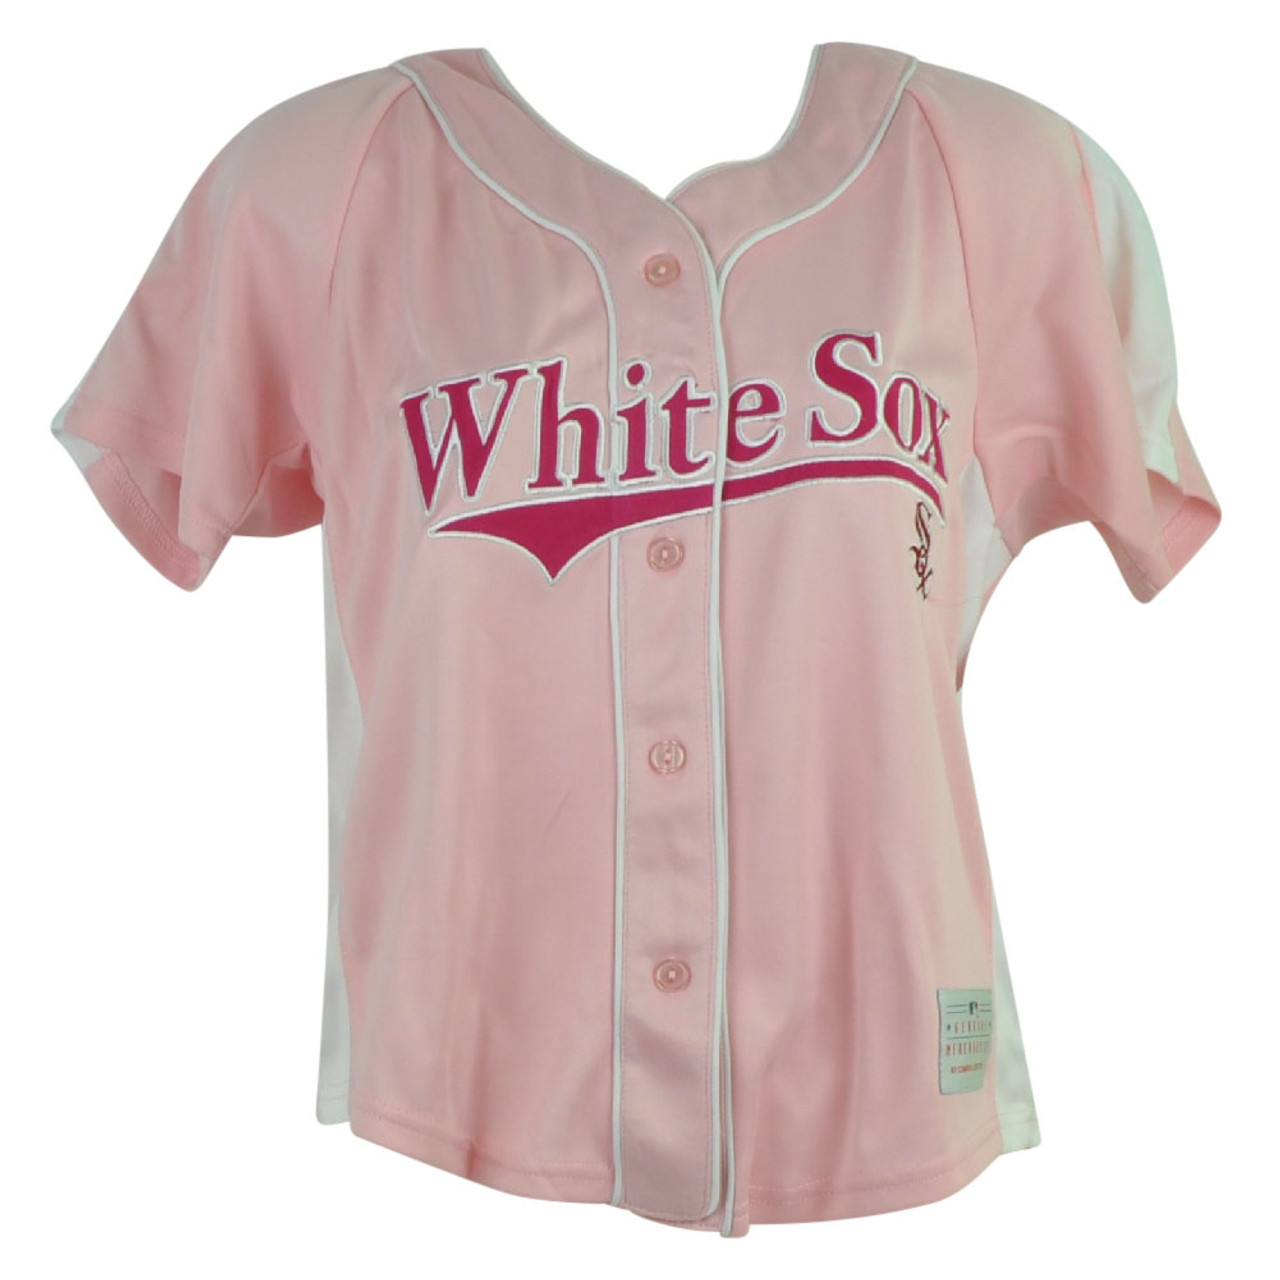 e123a4a6 MLB Chicago White Sox Adrian Womens Jersey ladies Button Up Pink Baseball  Sport